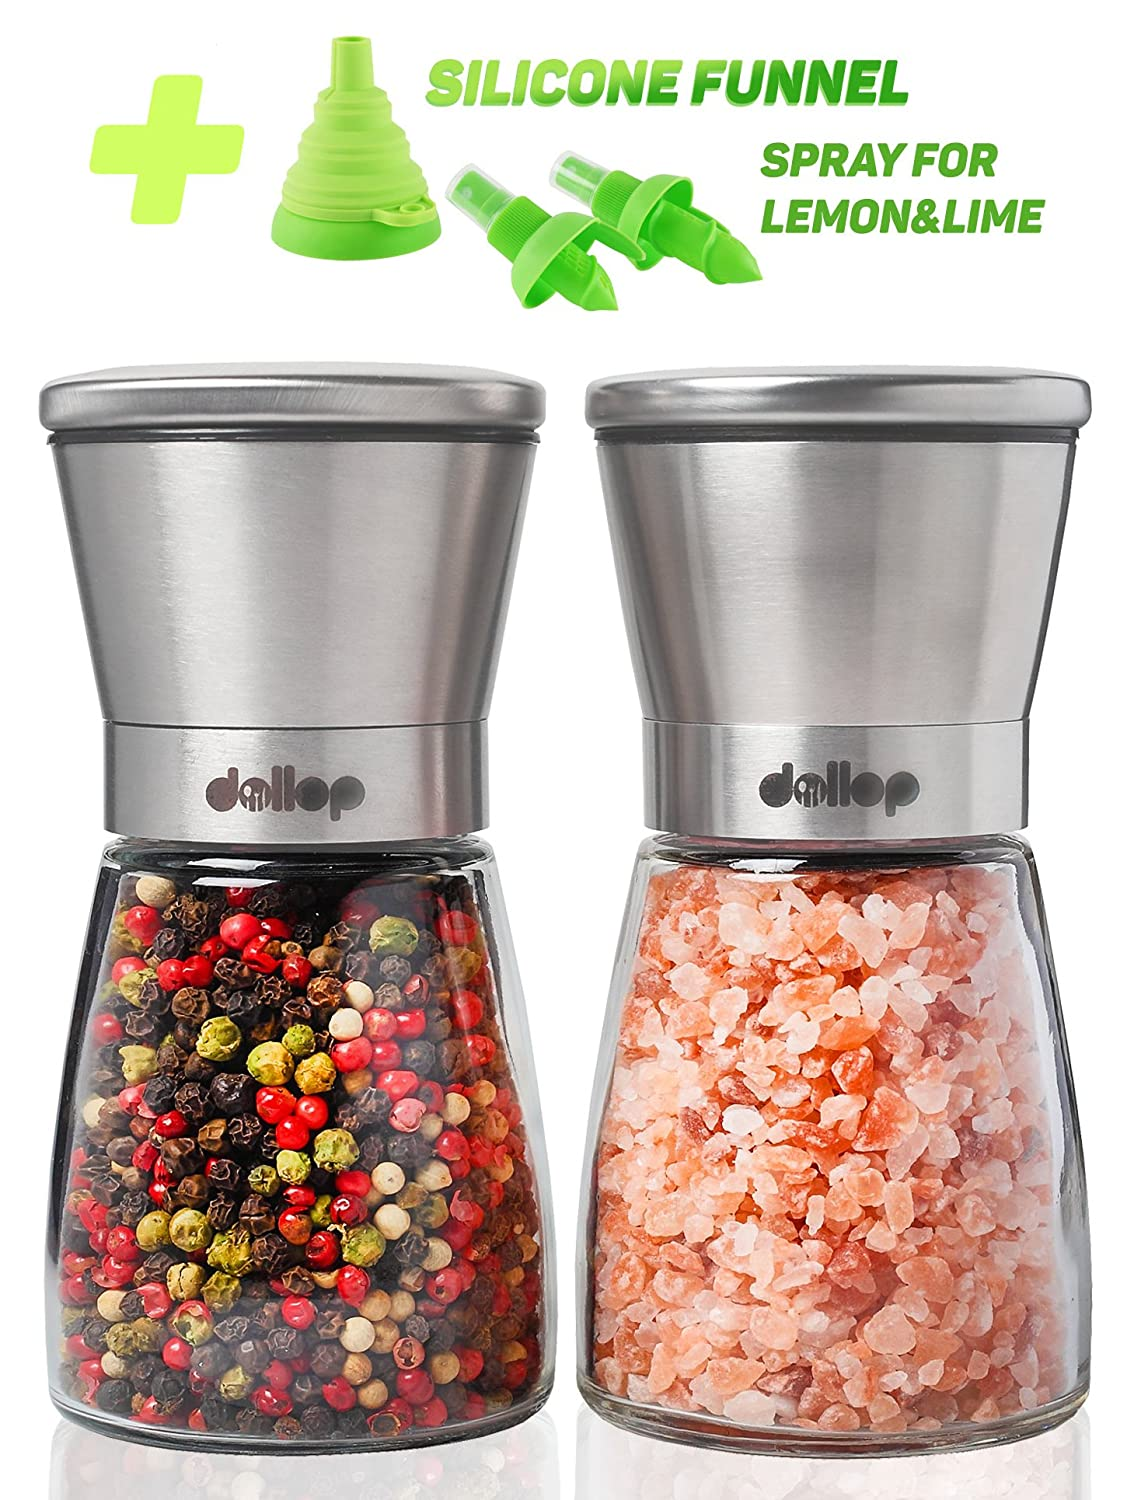 Salt and Pepper Grinder Set – Glass Shakers & Adjustable Ceramic Rotor in 2 Stainless Steel Mills + Silicone Funnel & 2 Citrus Sprayer – Best for Tasty and Healthy Food by Dollop dollop-27